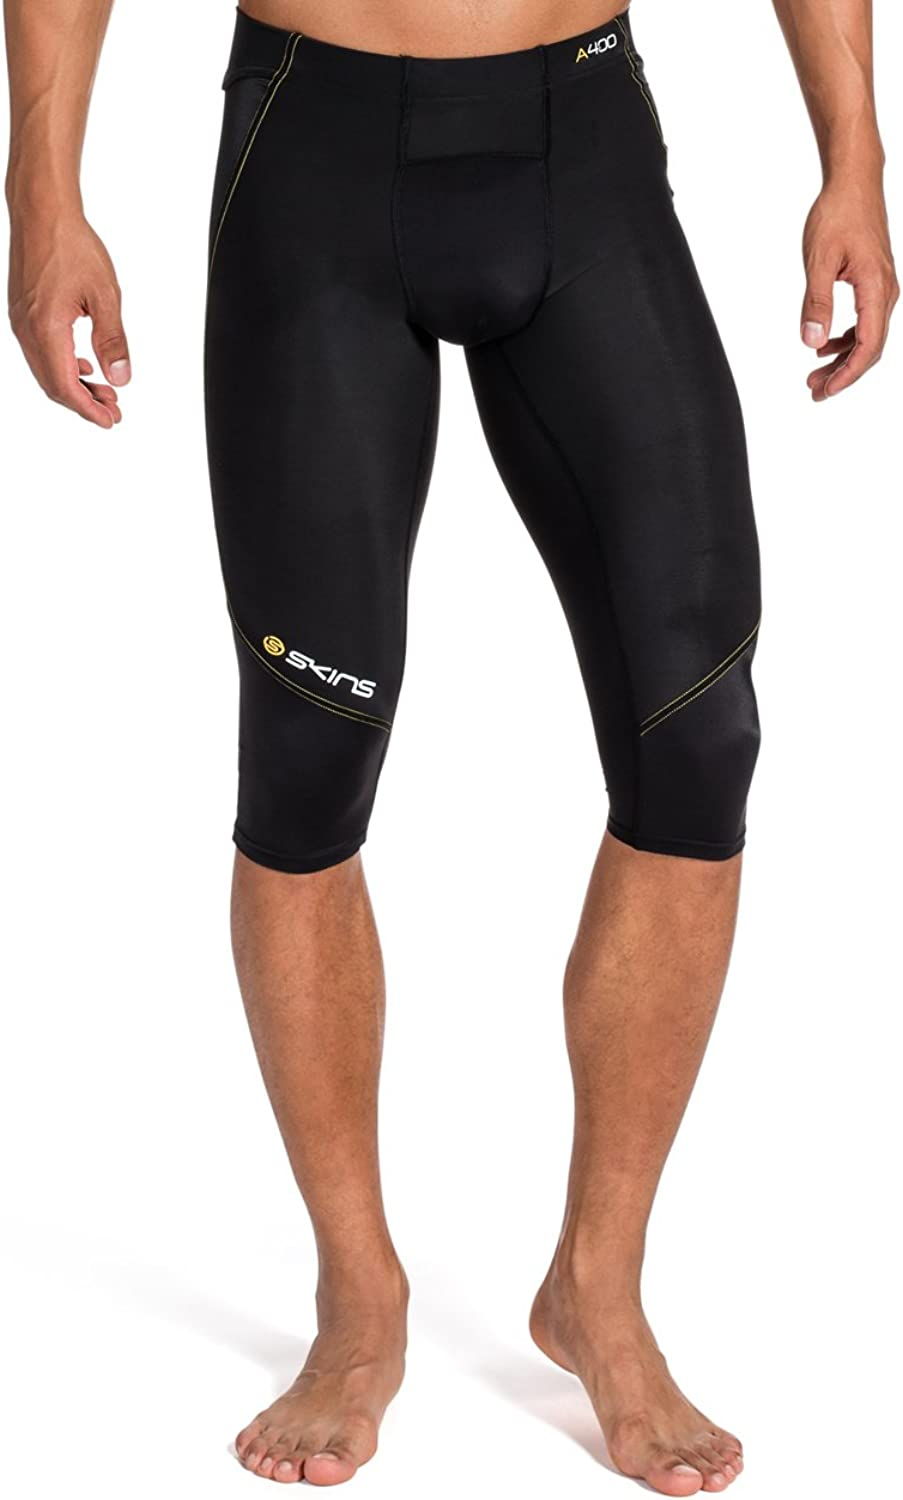 Skins A400 Men's Compression 3 4 Tights